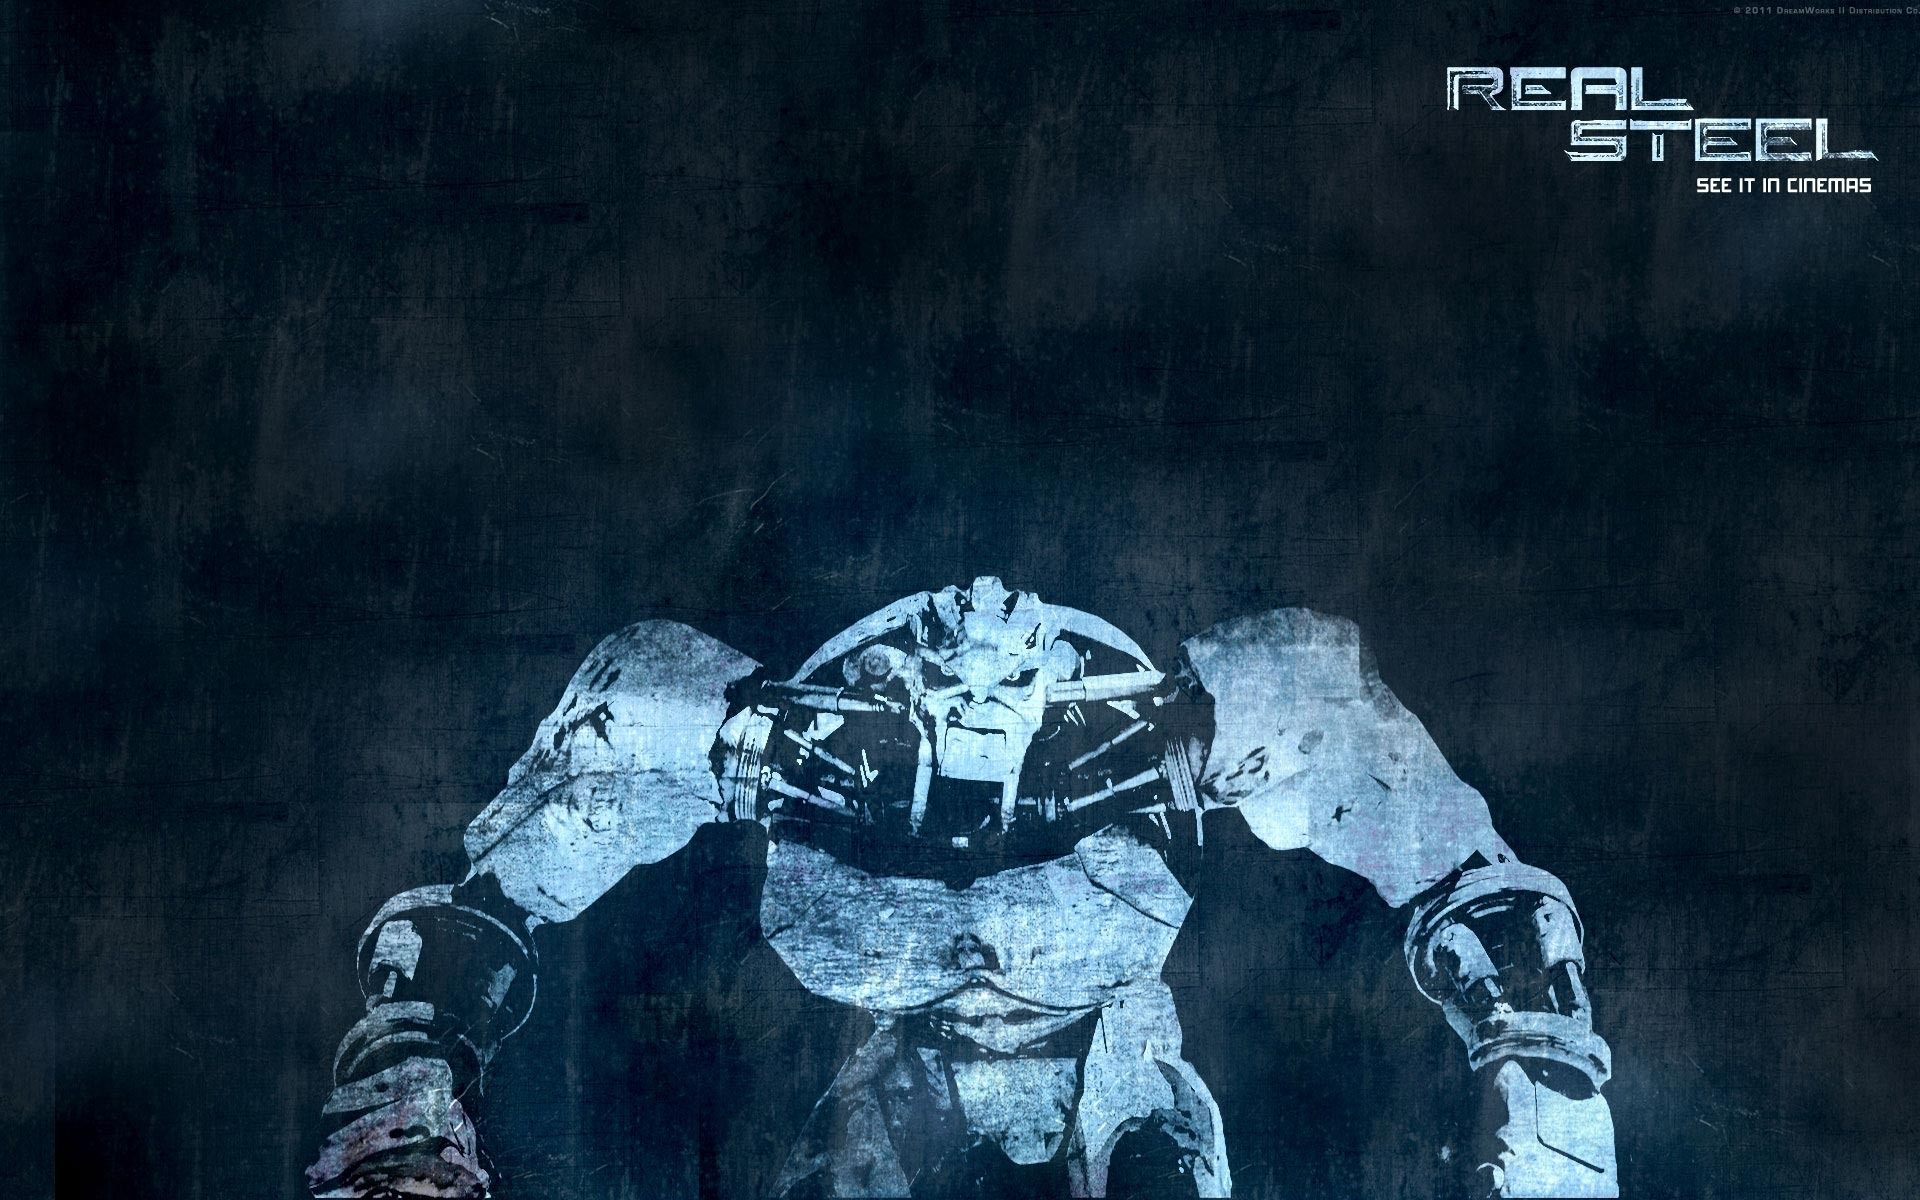 Real Steel Hd Wallpapers 5 1920x1200 Wallpaper Download Real